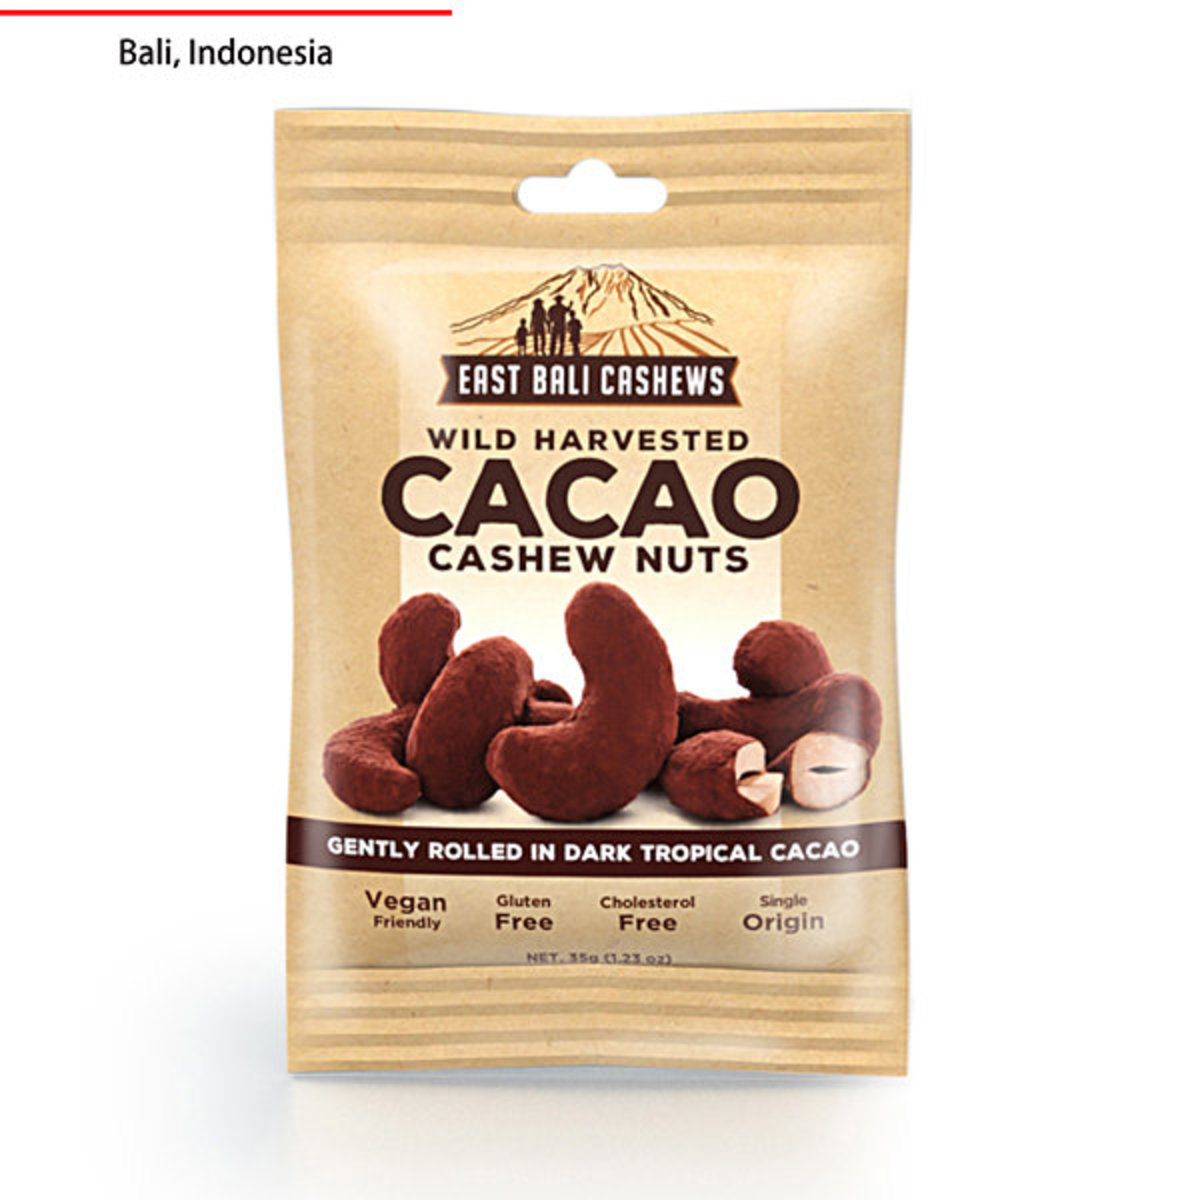 Gluten Free Wild Harvested Cacao Cashew Nut - With Dark Tropical Cacao - 35g - Preservative Free - Cholesterol Free - Vegan Friendly